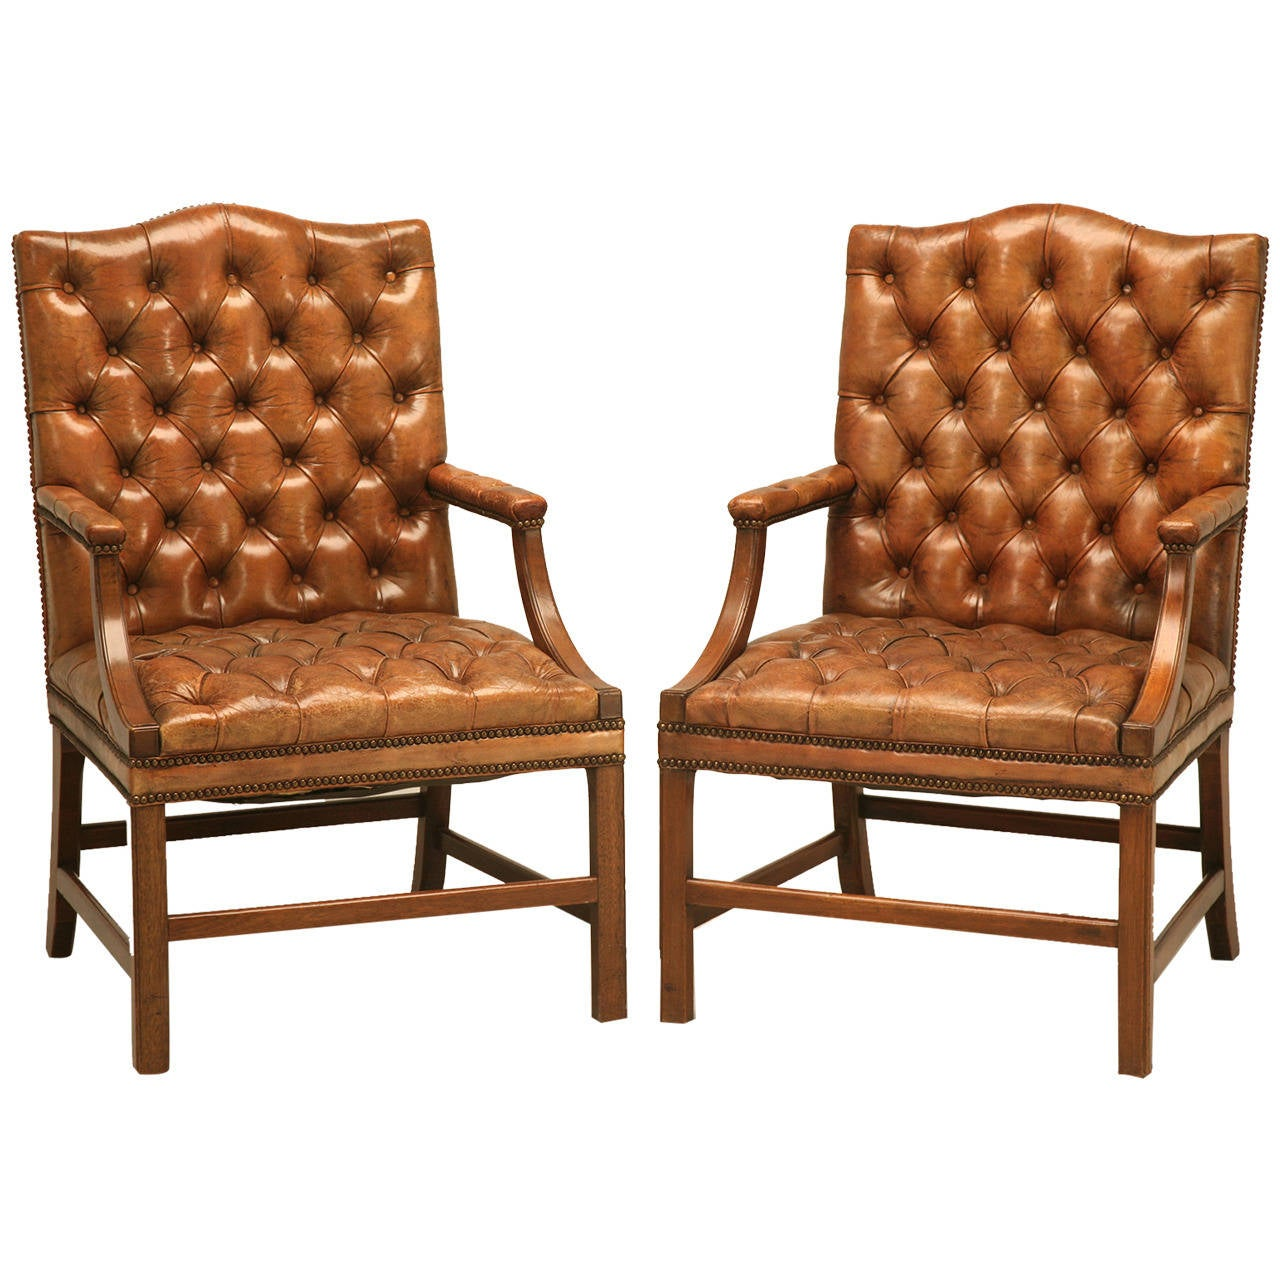 Outstanding Antique Chesterfield Armchair Pics